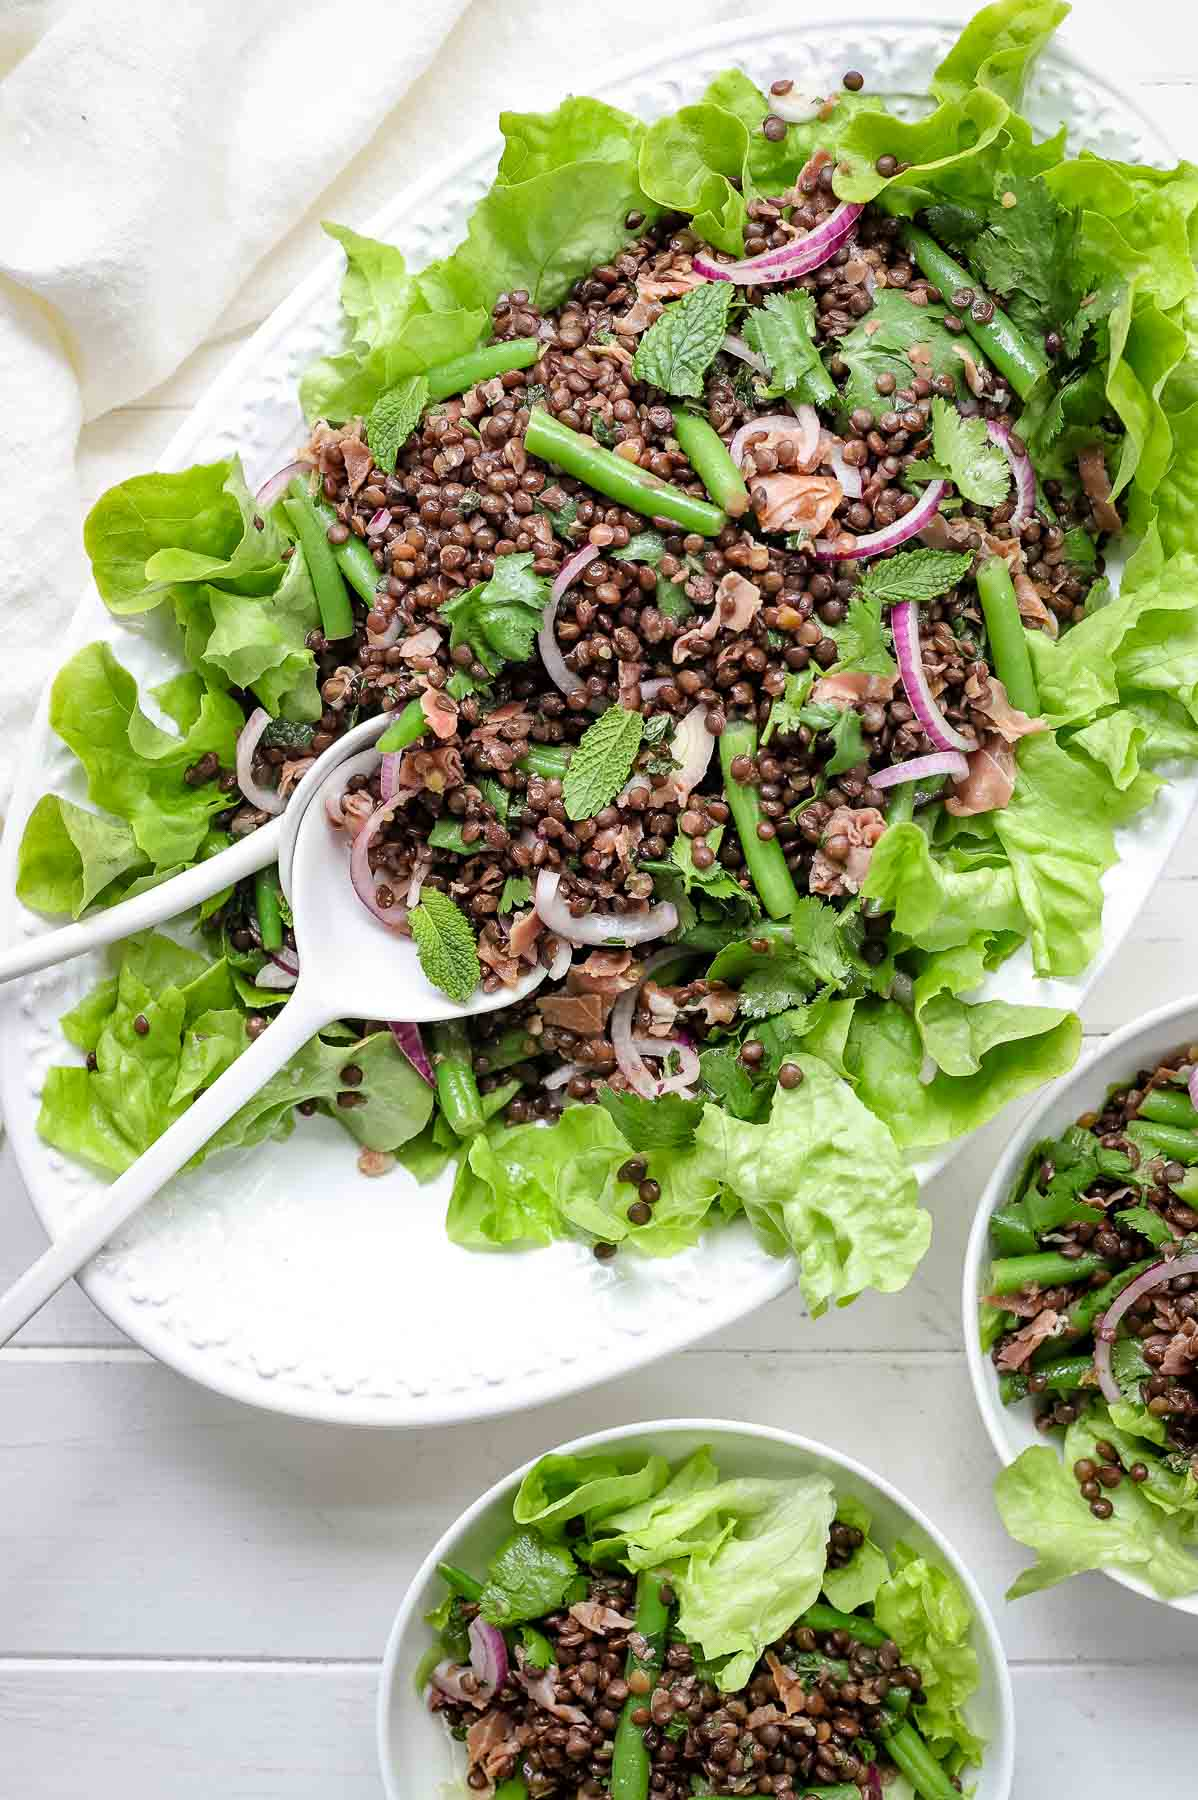 Beluga Lentil Salad with Green Beans & Lemon-Mint Dressing